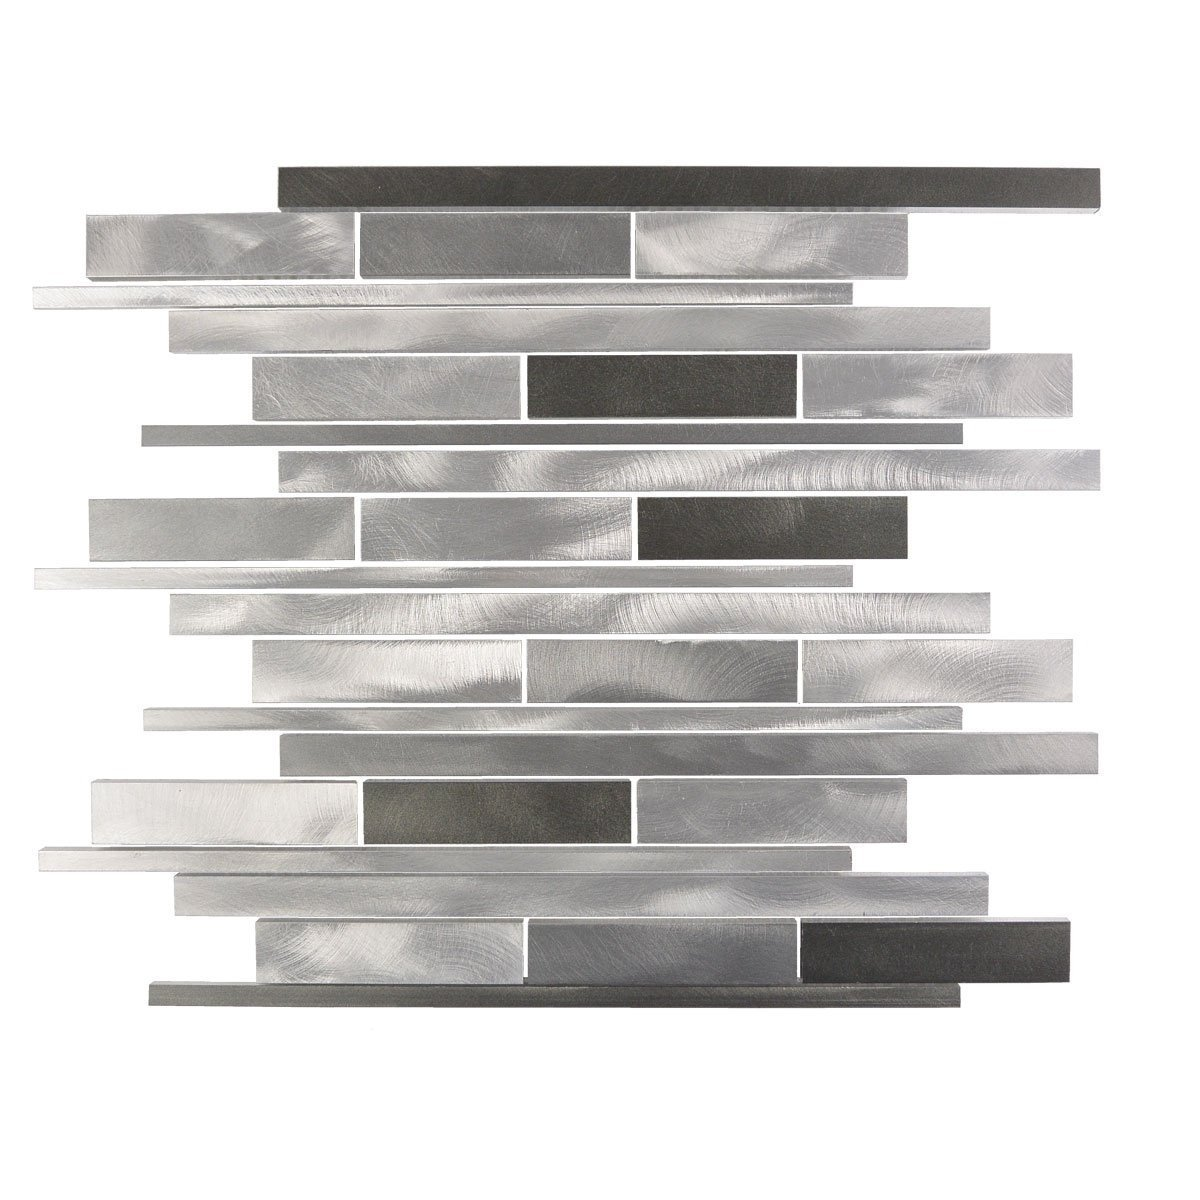 Abolos- City Lights New York Random Sized Aluminum Mosaic Tile in Glazed Silver (11sqft -11pc Box)